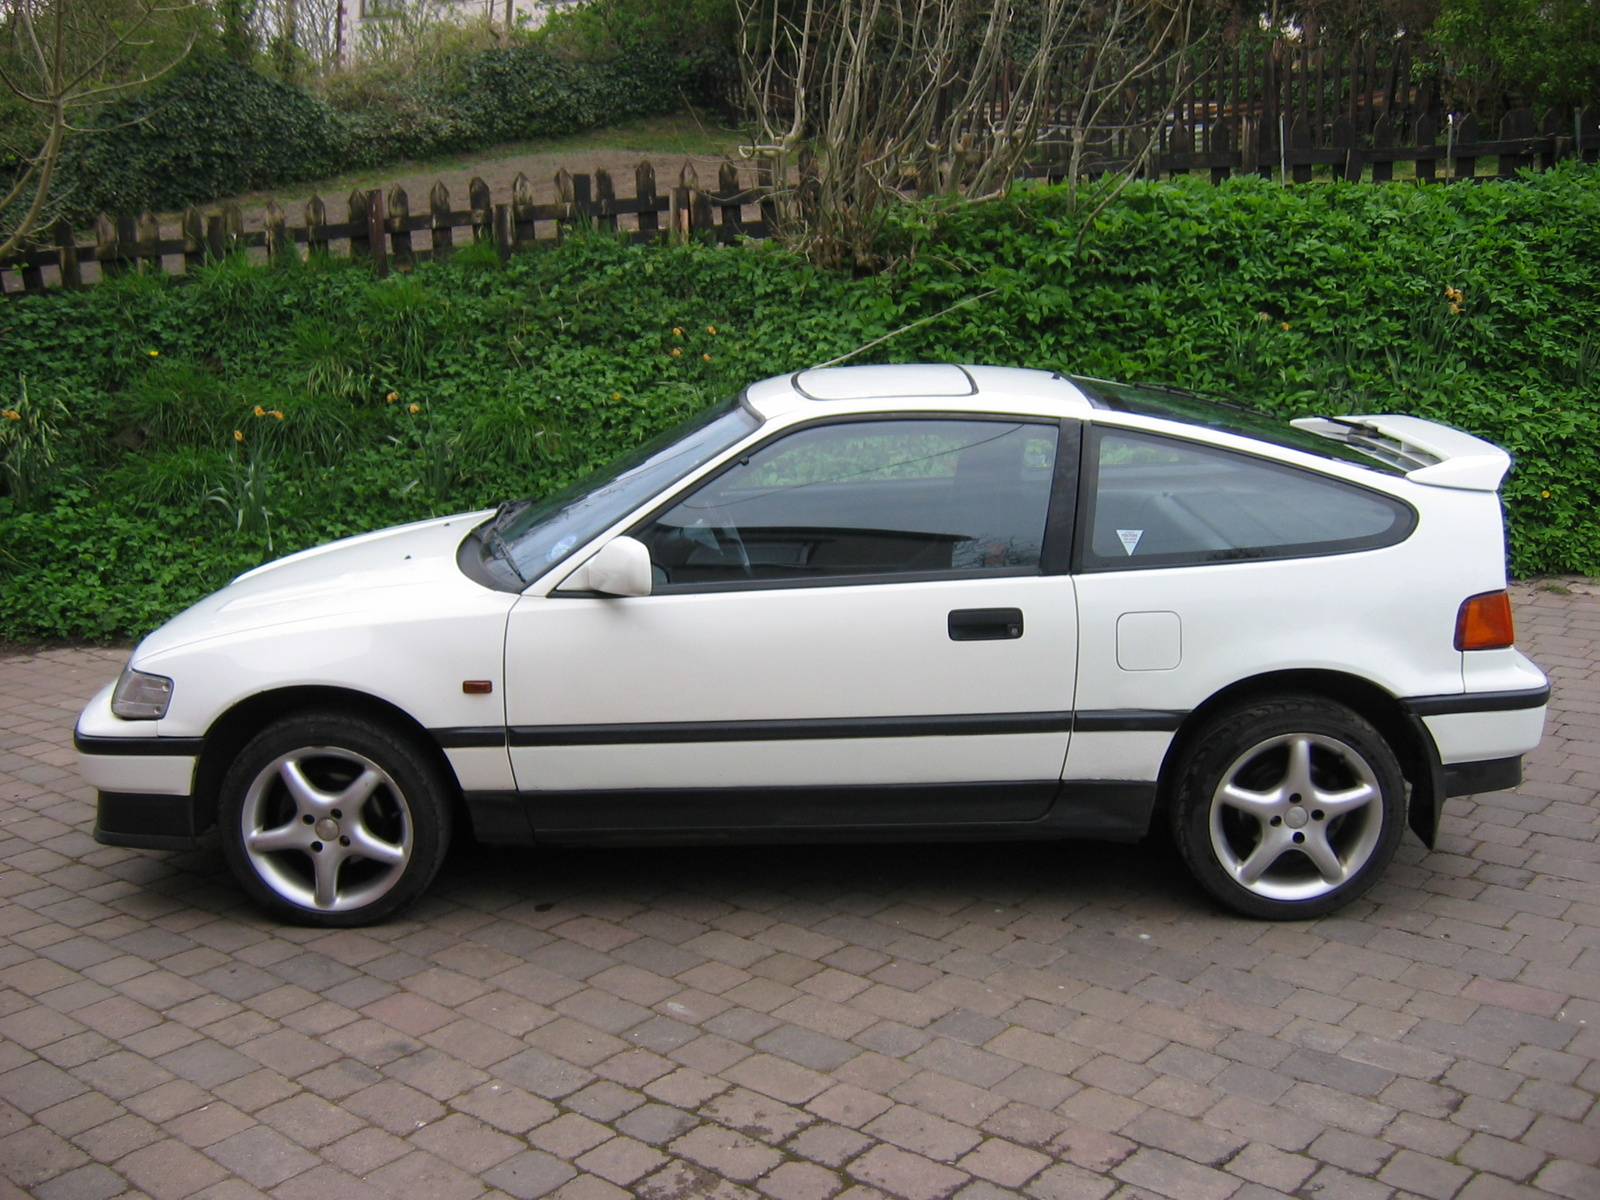 1991 Honda Civic Crx Photos Informations Articles 2000 Accord Headlight Wiring Diagram 16